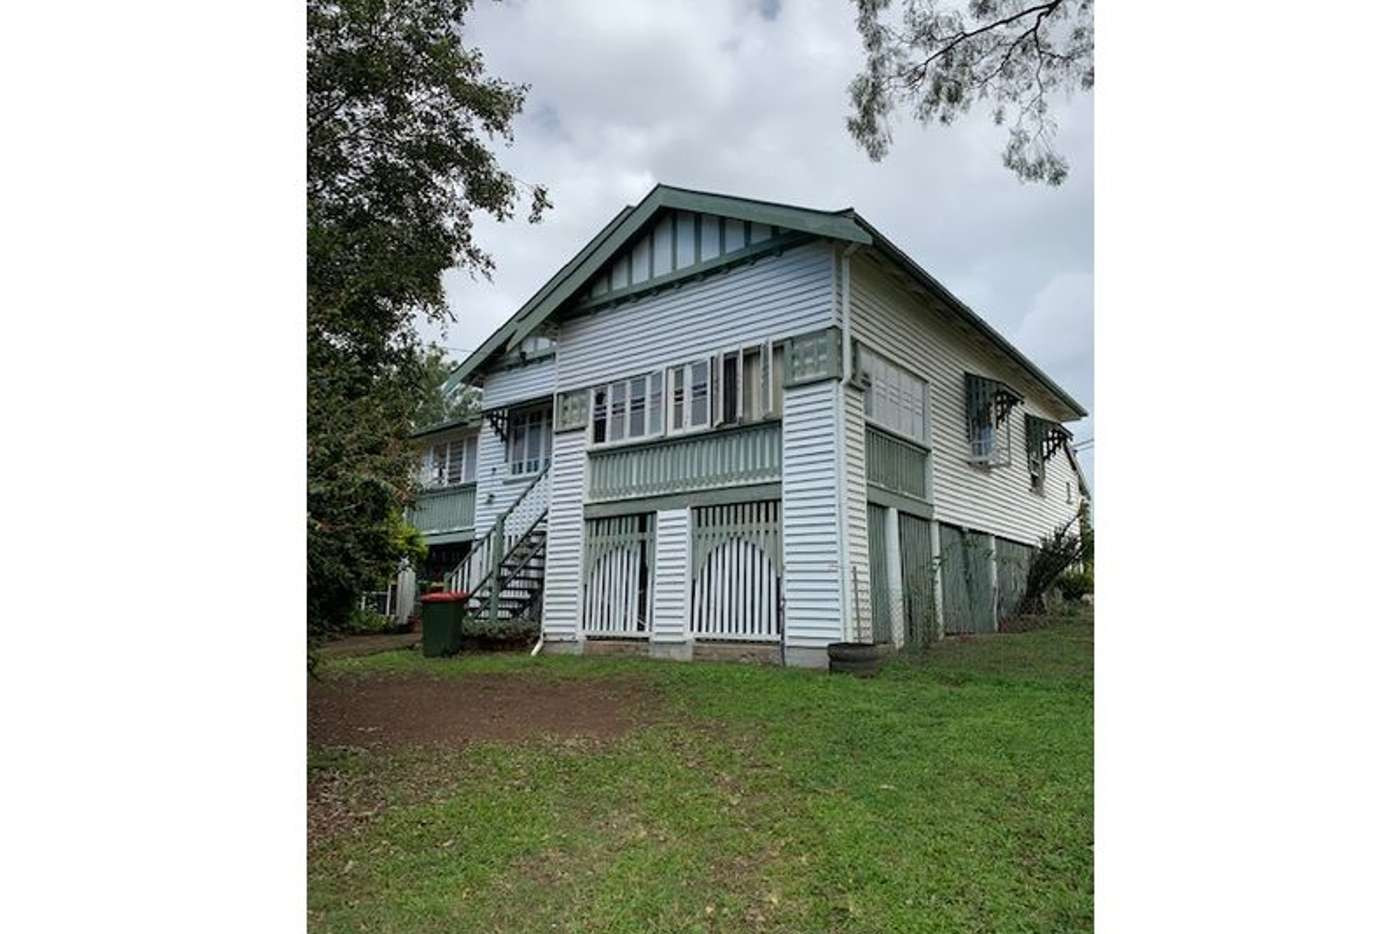 Main view of Homely house listing, 61 Elizabeth, Kenilworth QLD 4574